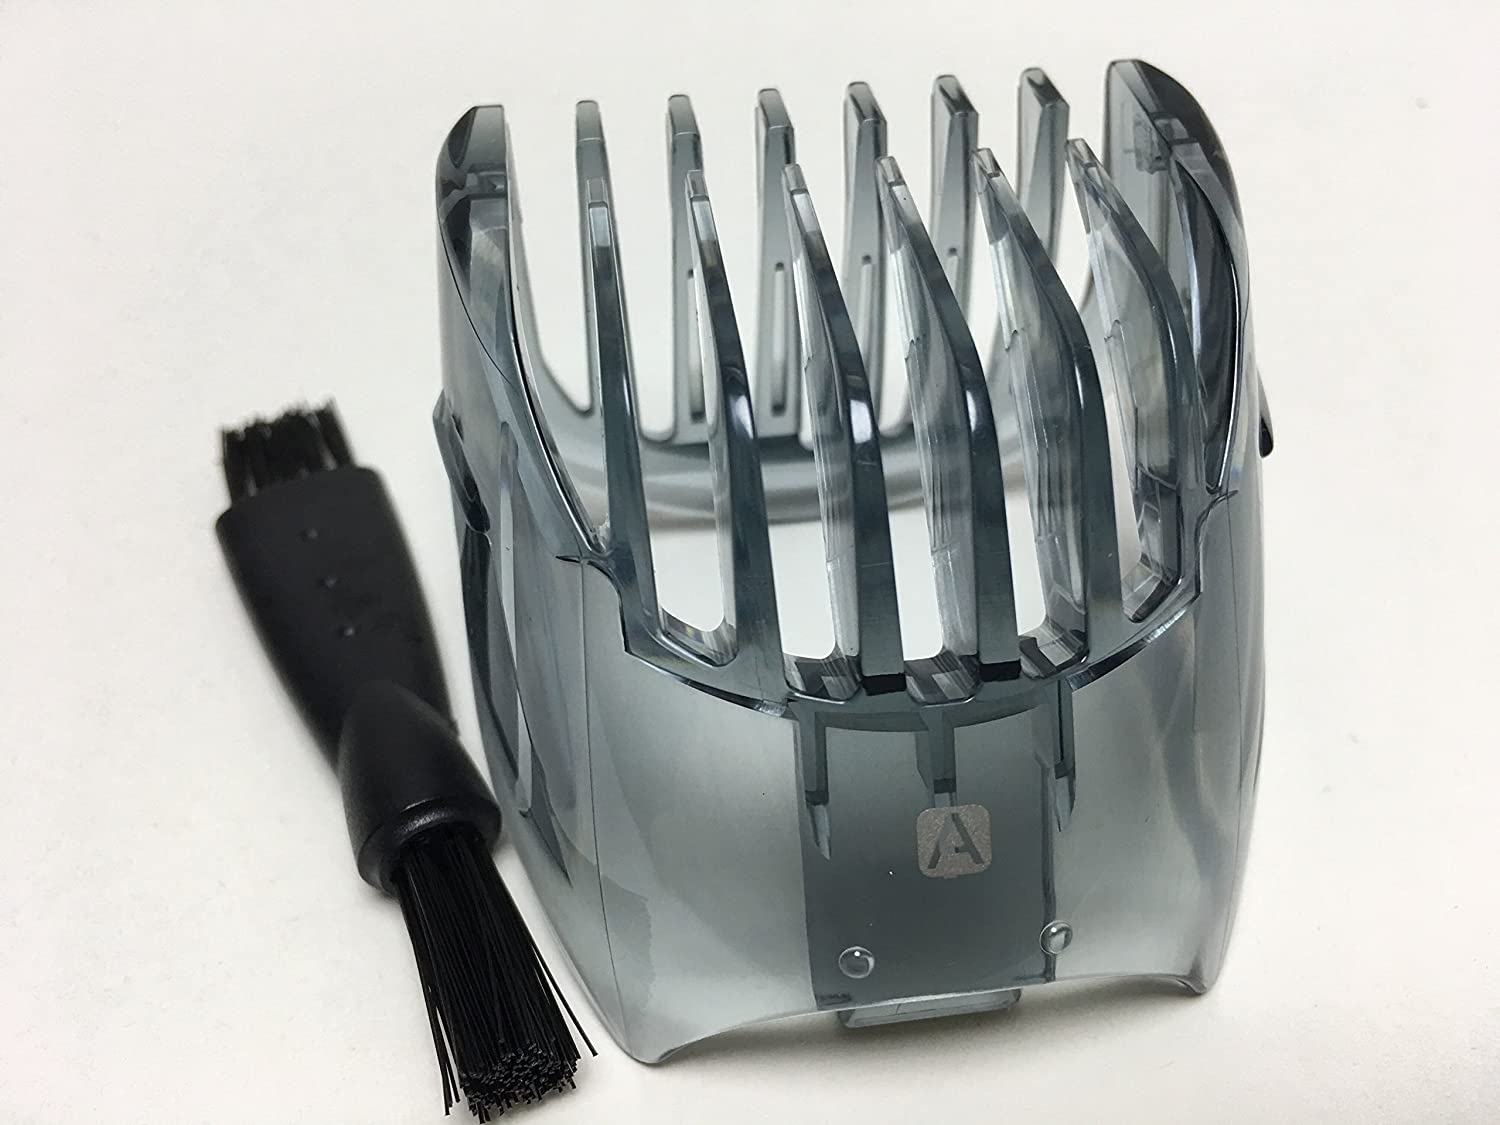 New HAIR CLIPPER COMB 1-10mm For Panasonic ER-GB60 ER-GB74 ER-GB70 ER-GB80 BEARD Trimmer clipper hair shaver Replacement Accessories Parts generic